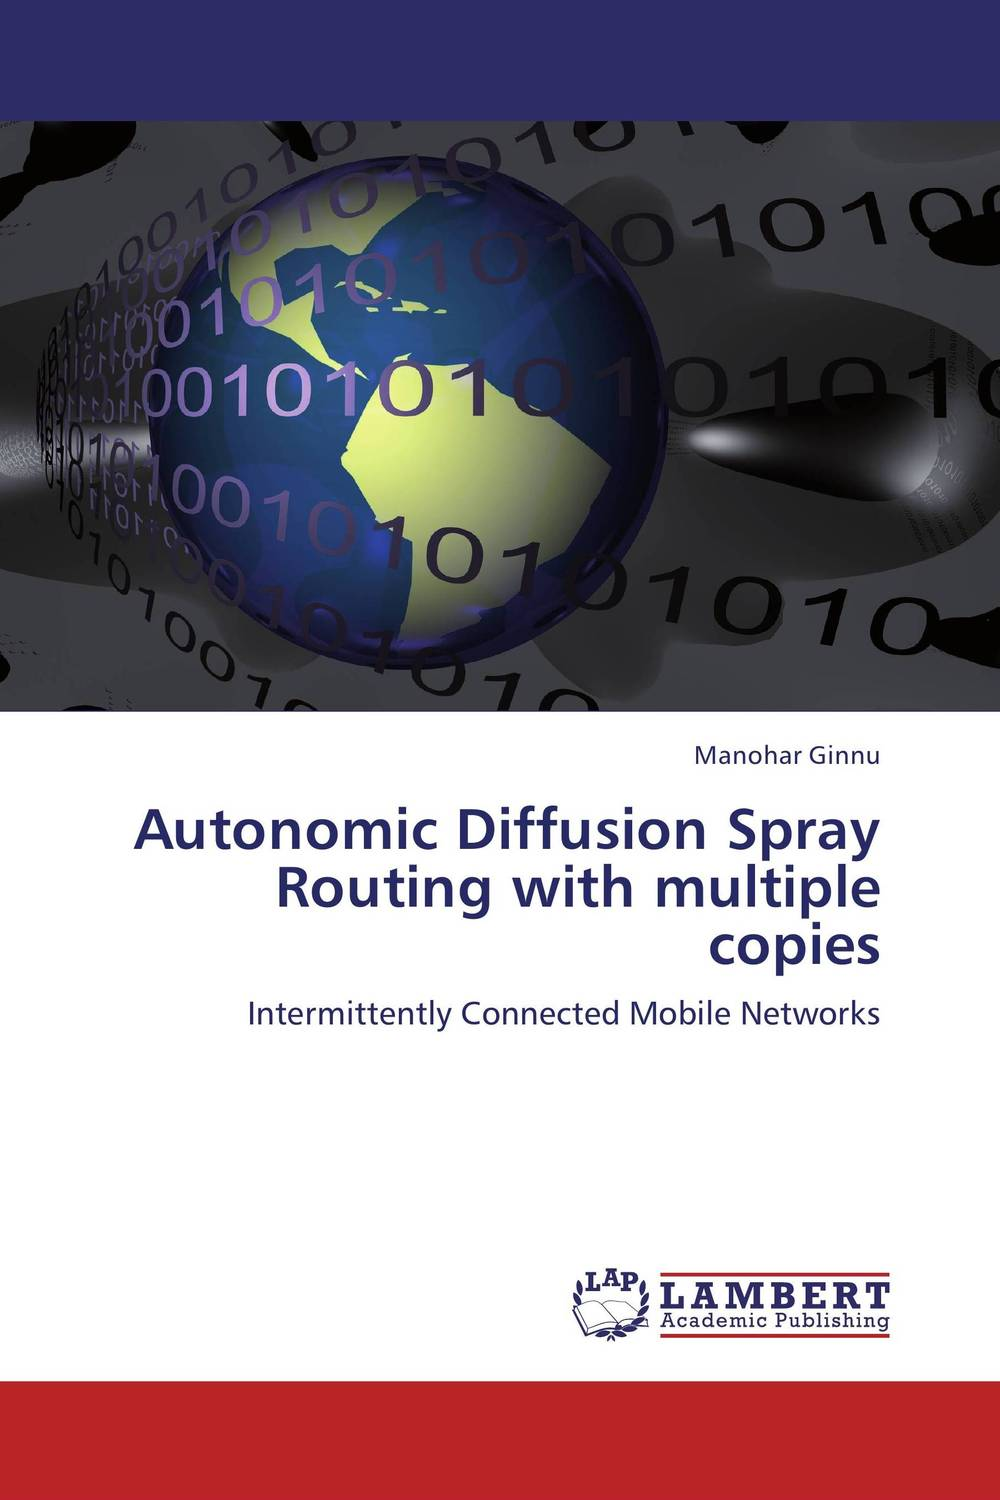 Autonomic Diffusion Spray Routing with multiple copies zhili sun satellite networking principles and protocols